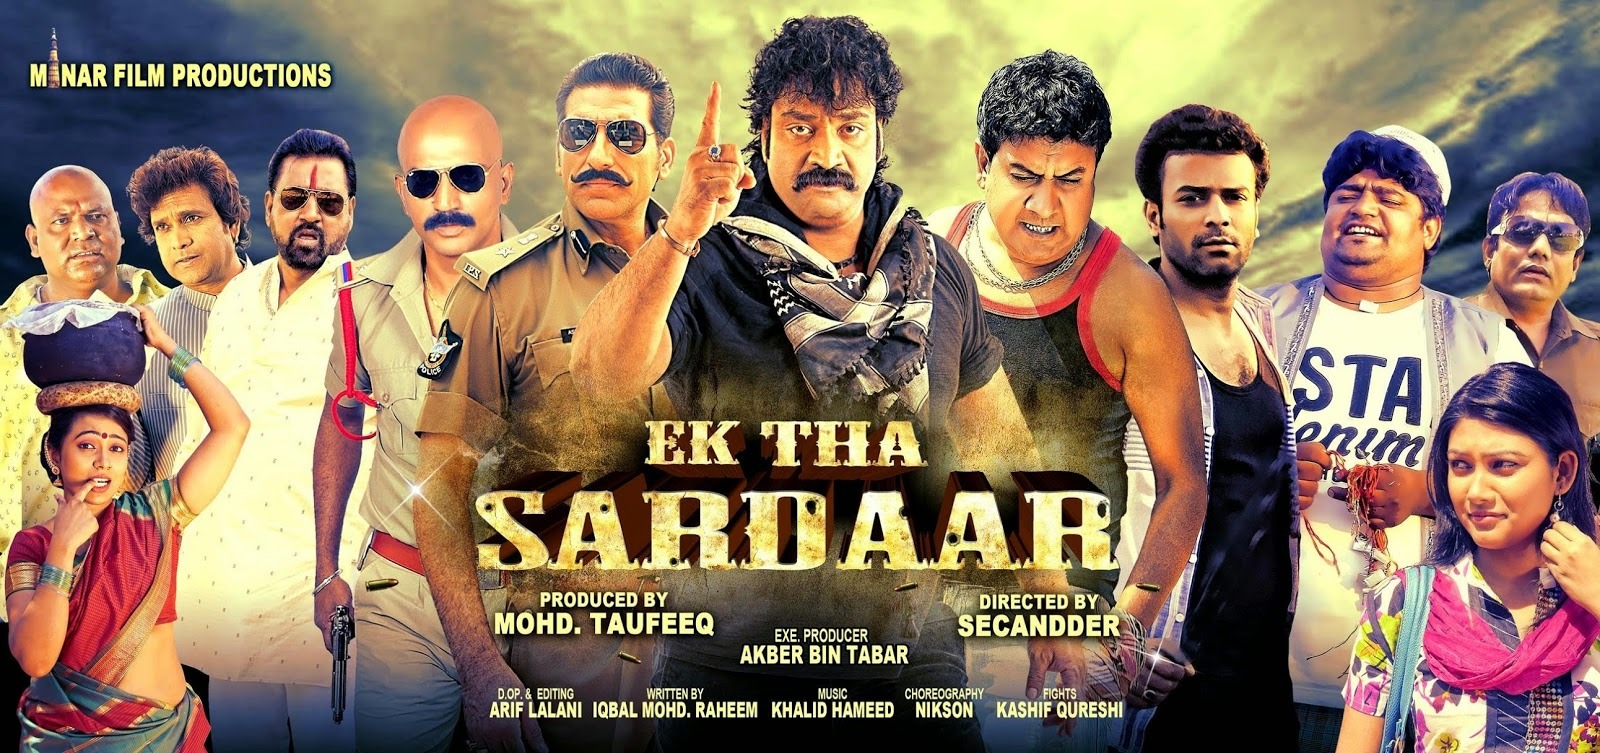 Ek tha sardaar 2014 Hindi Movie Watch Online